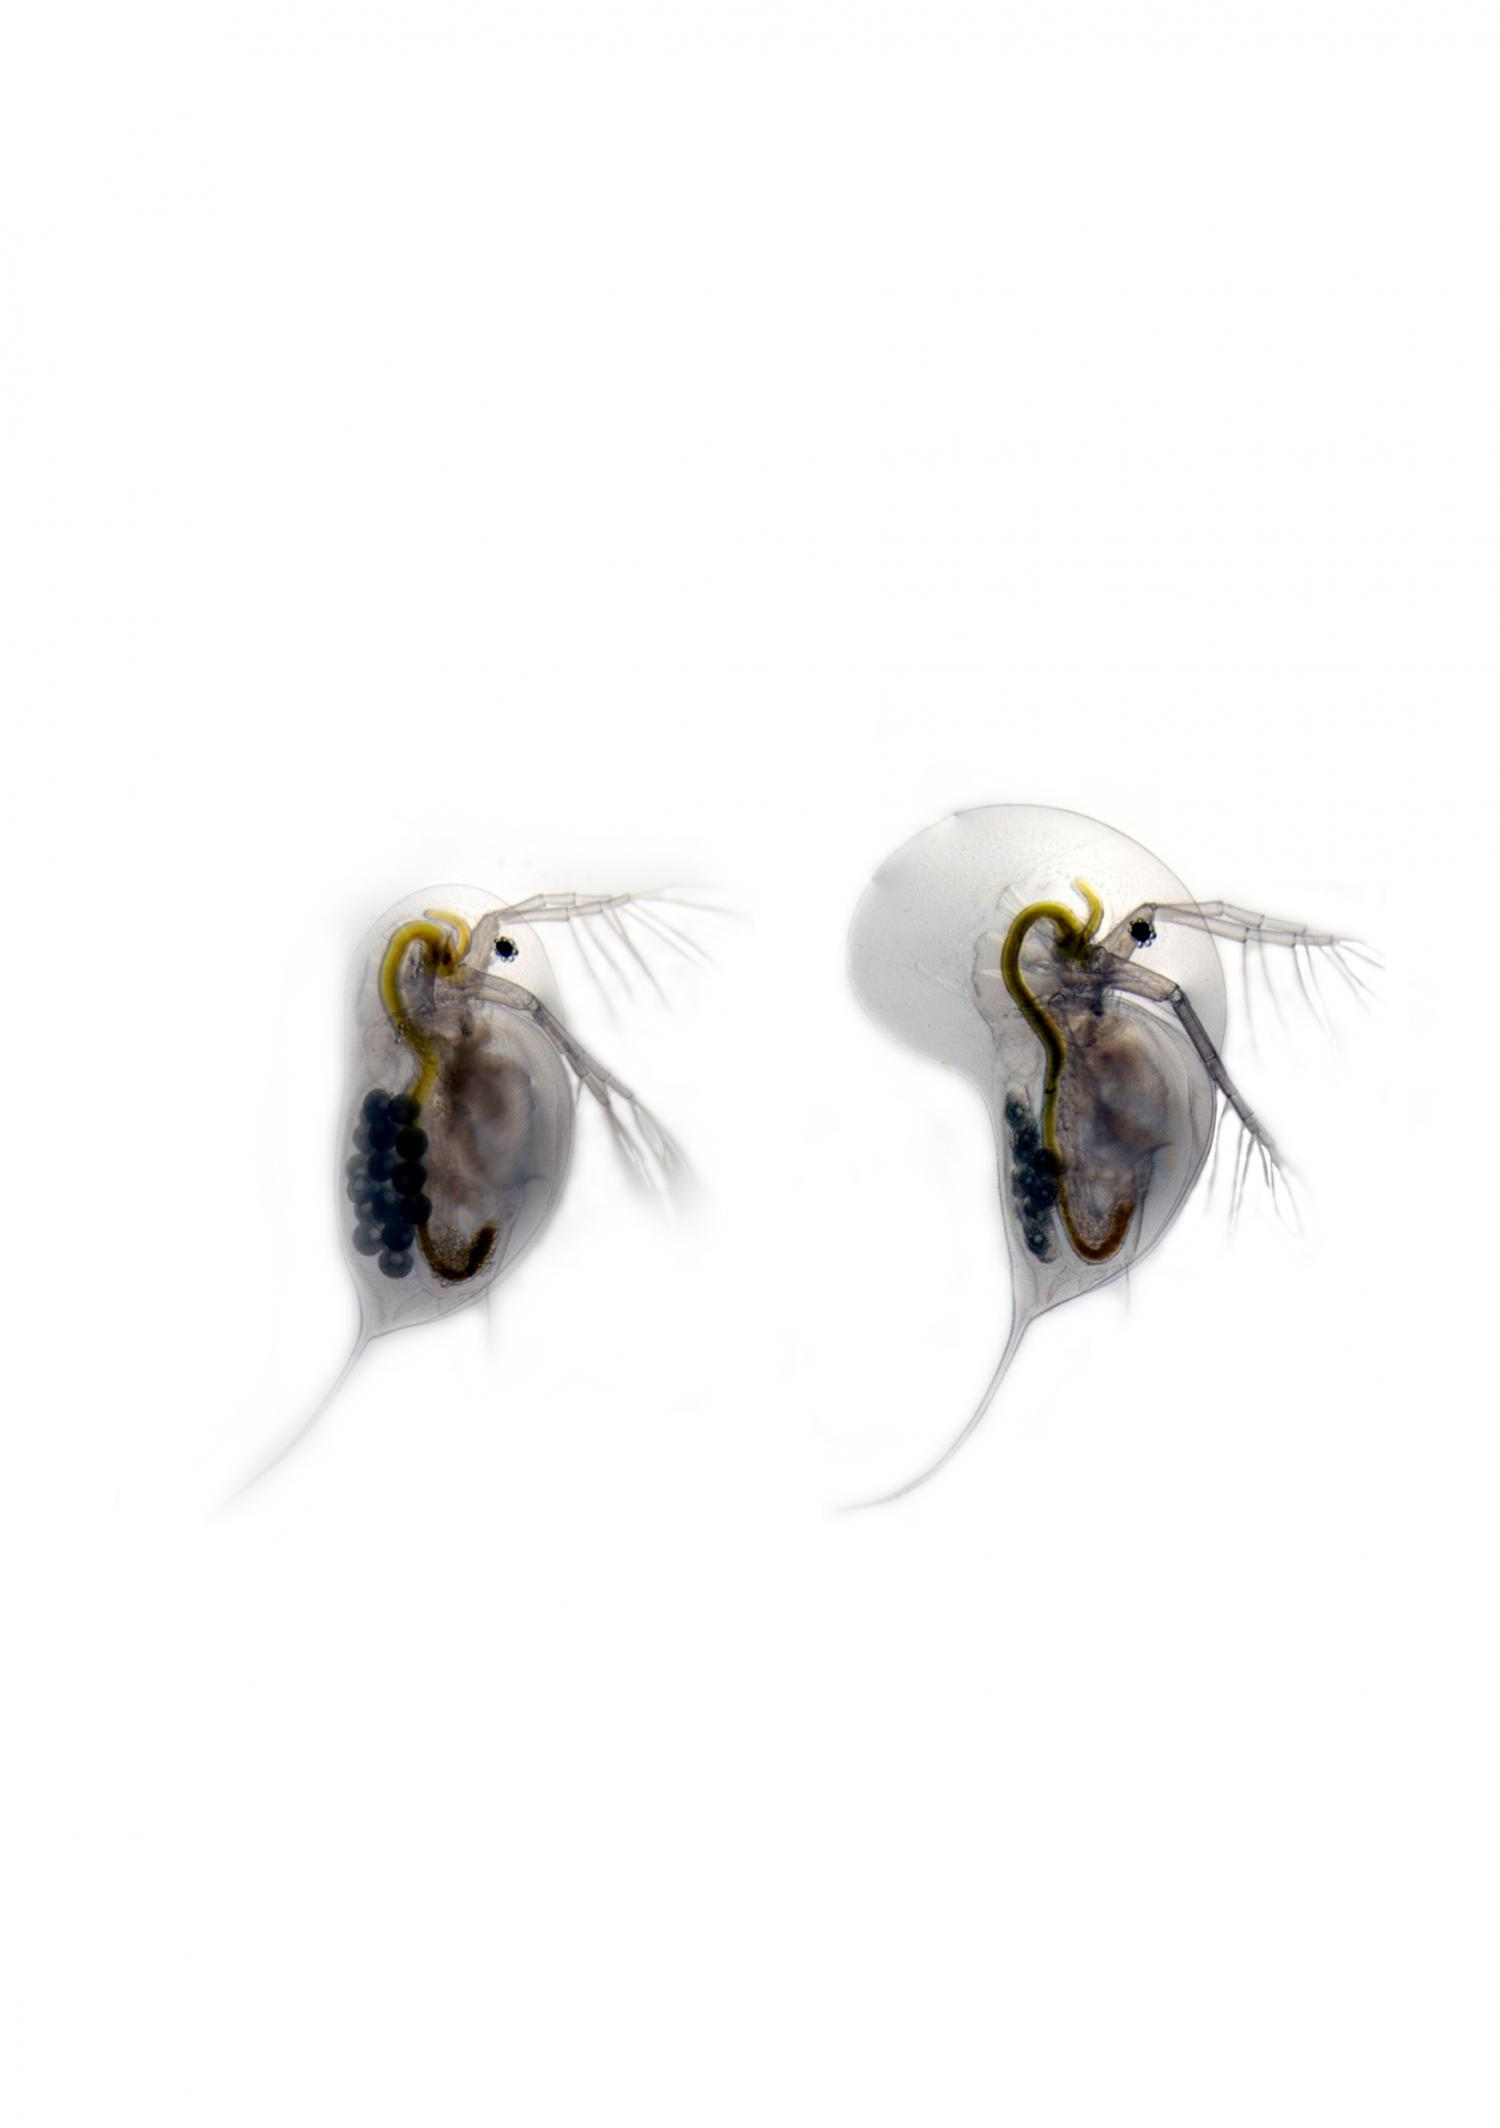 Transforming Water Fleas Prepare For Battle